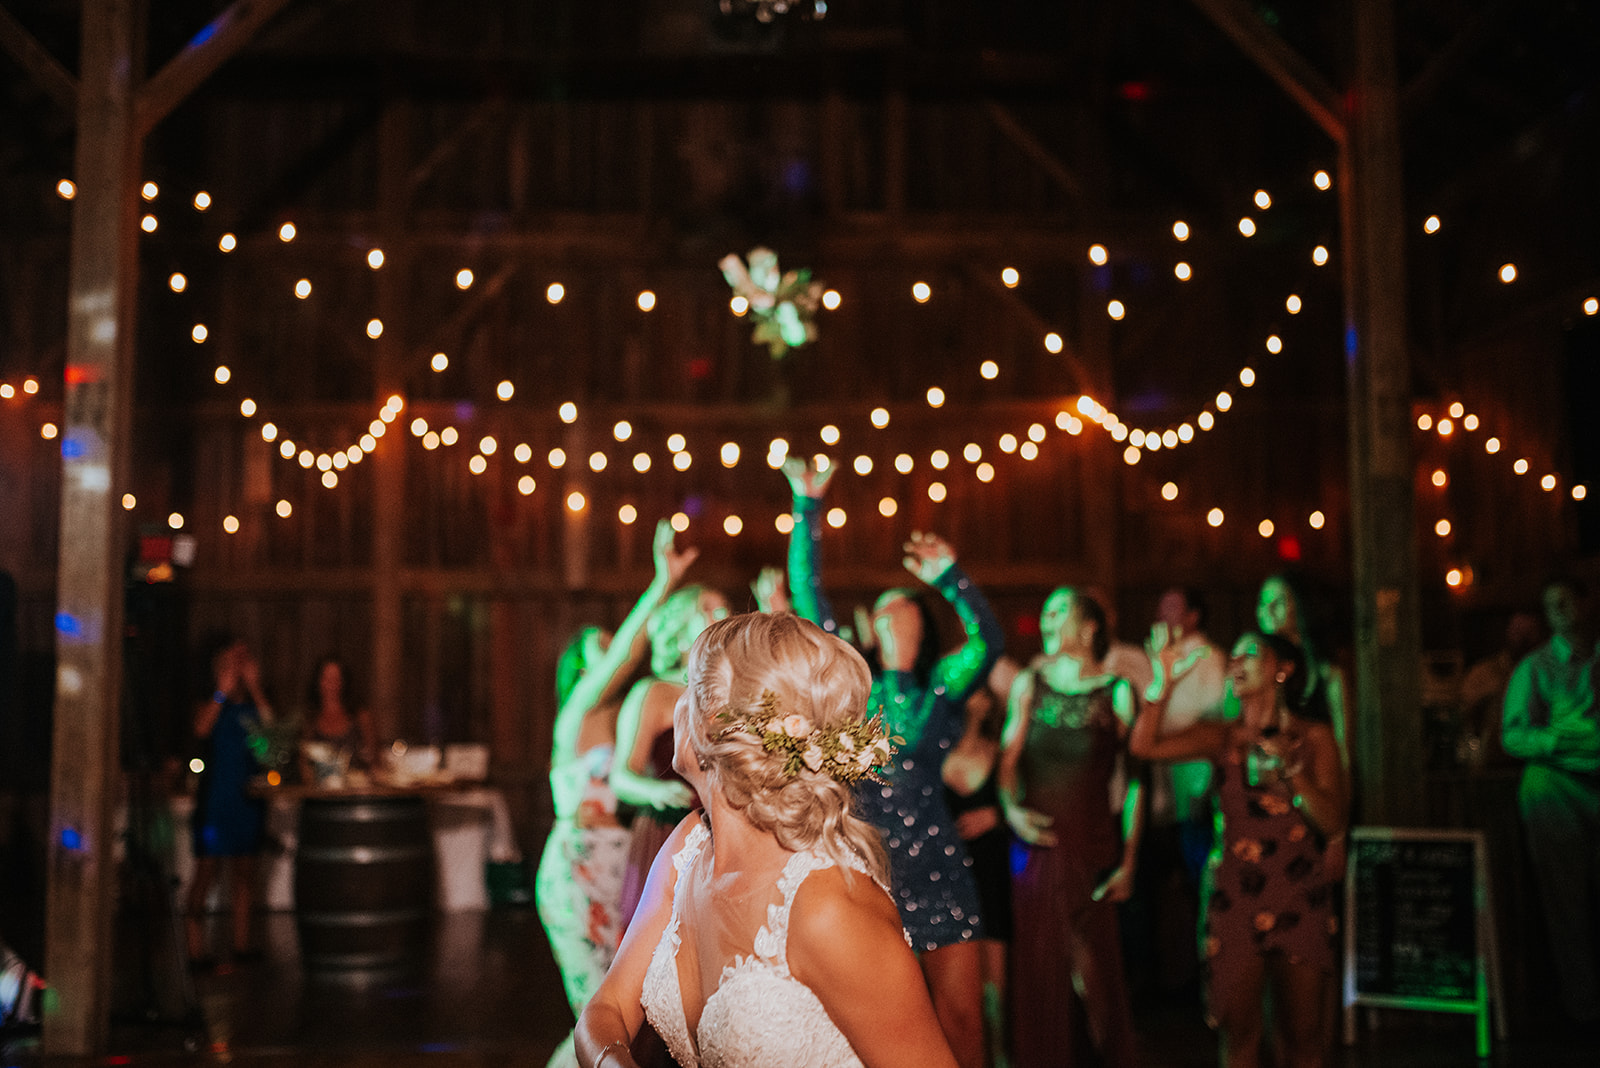 overthevineswisconsinwedding_1482.jpg